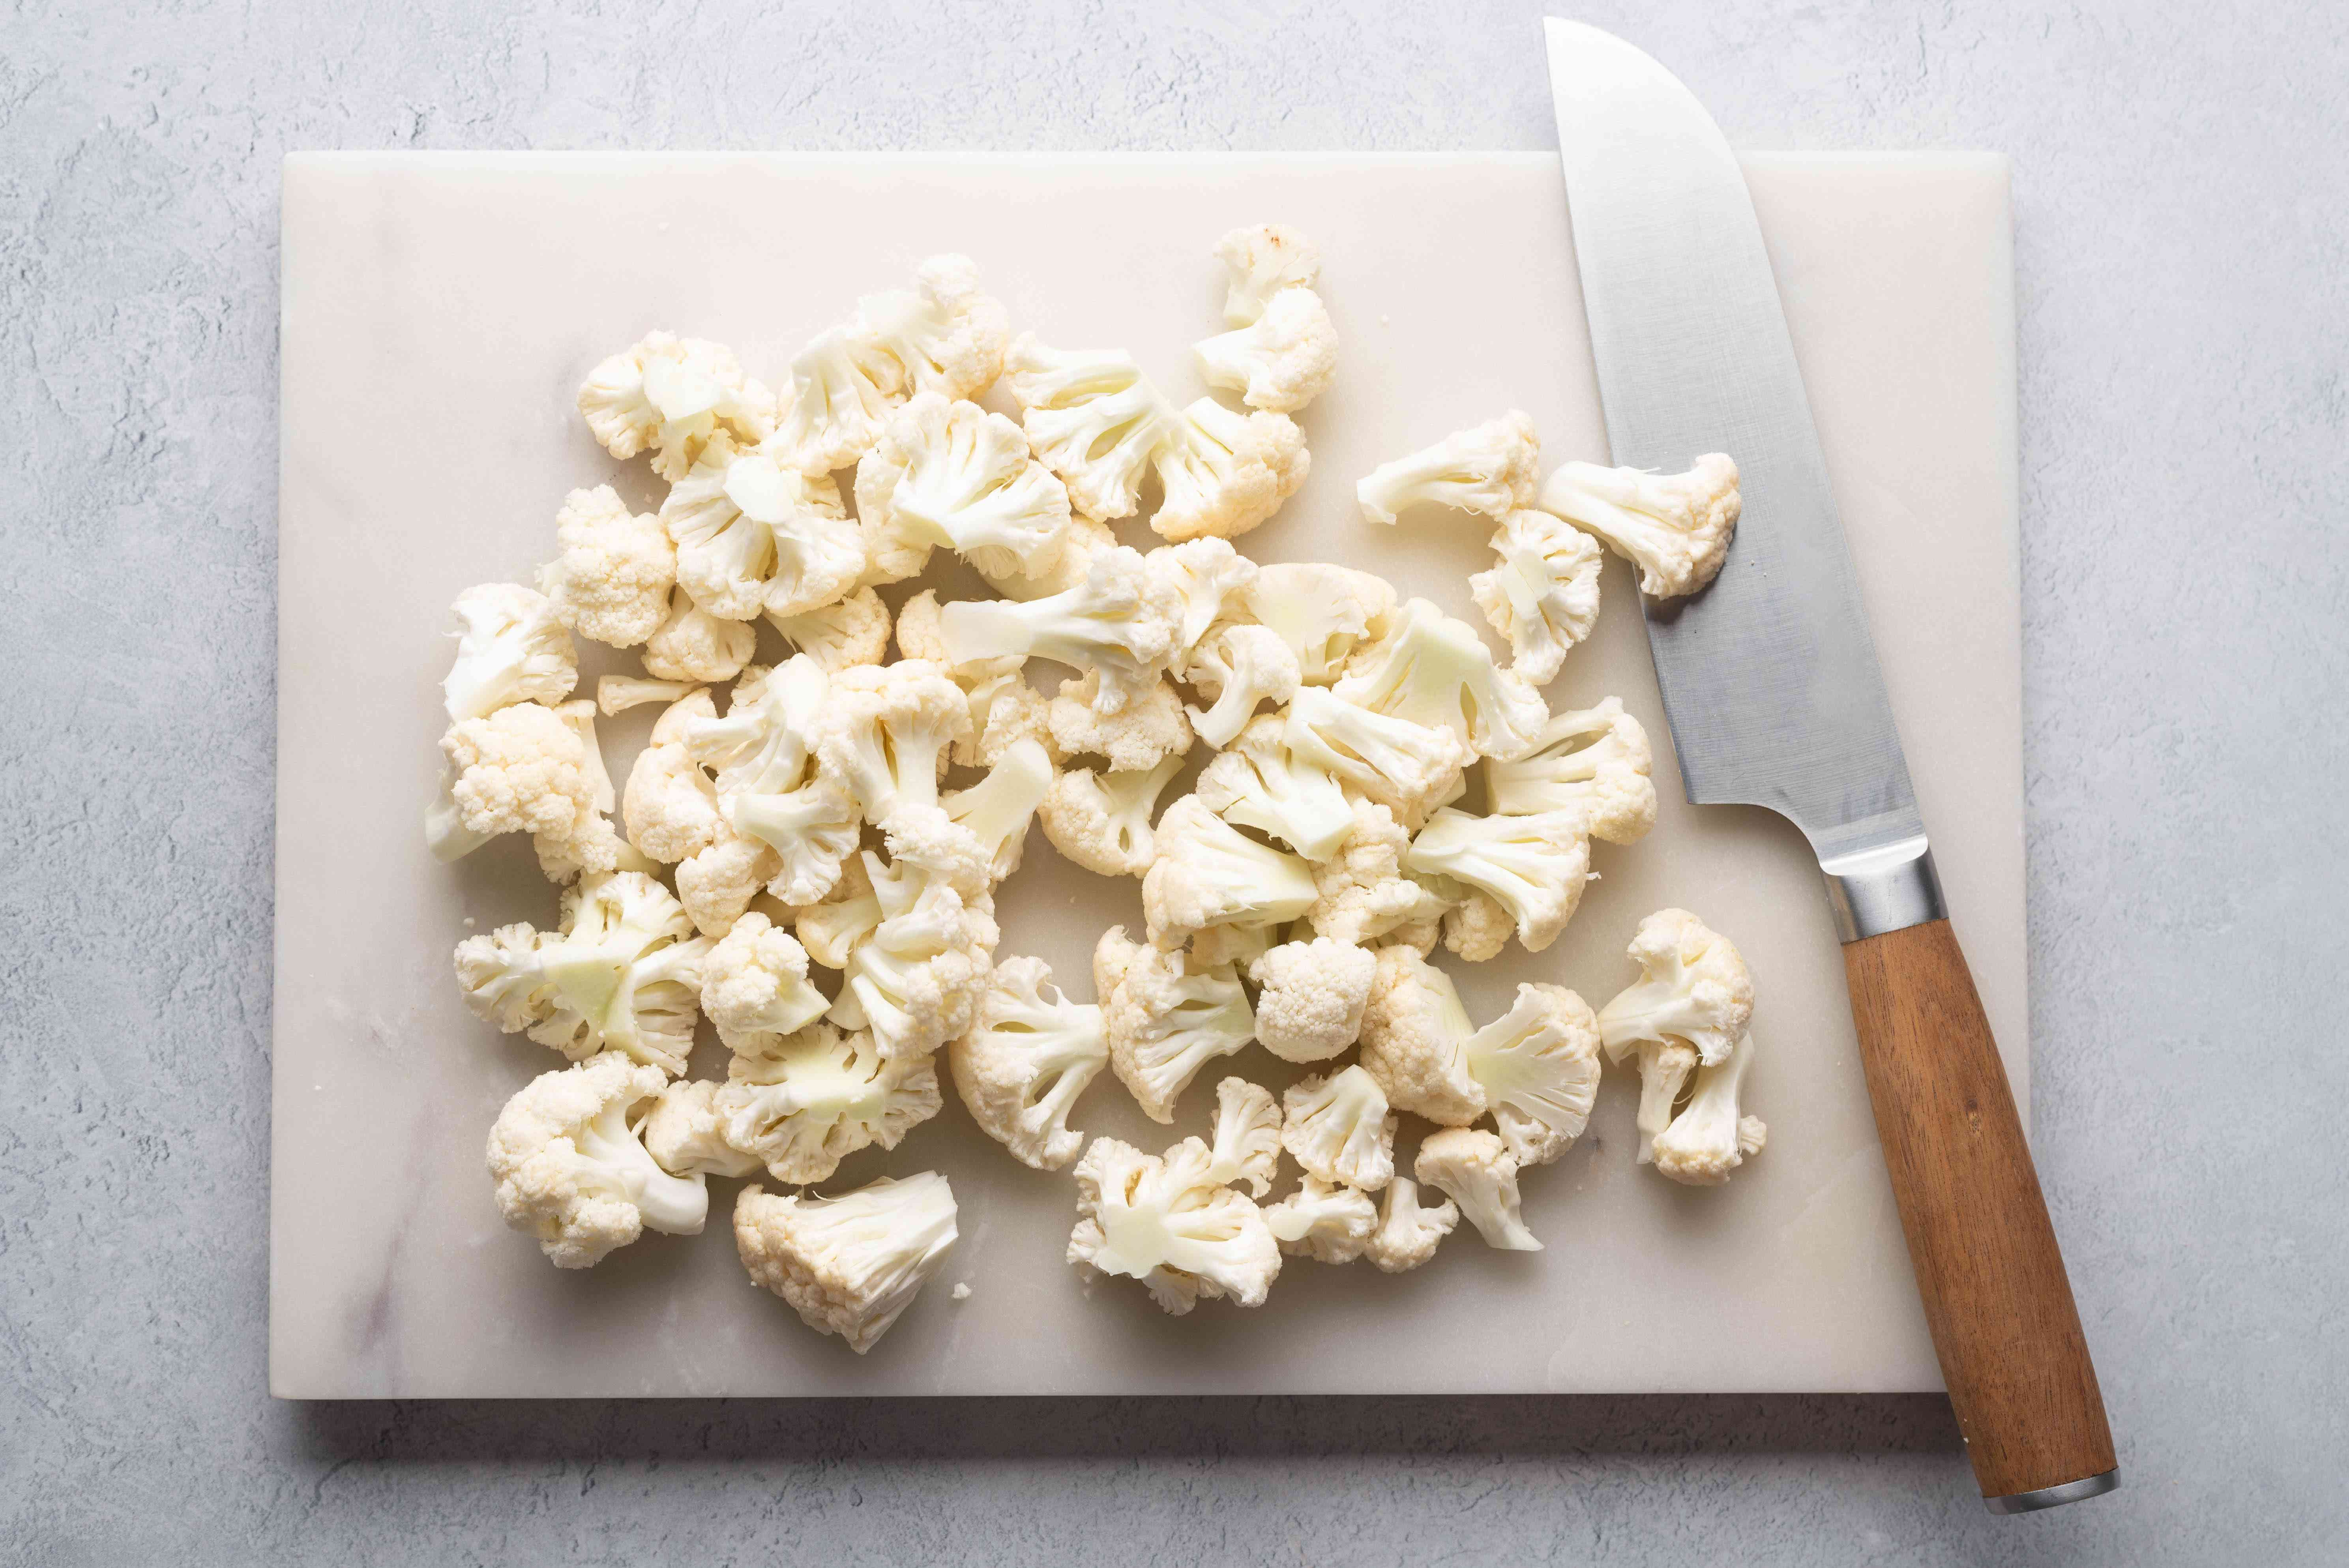 Clean and separate the cauliflower